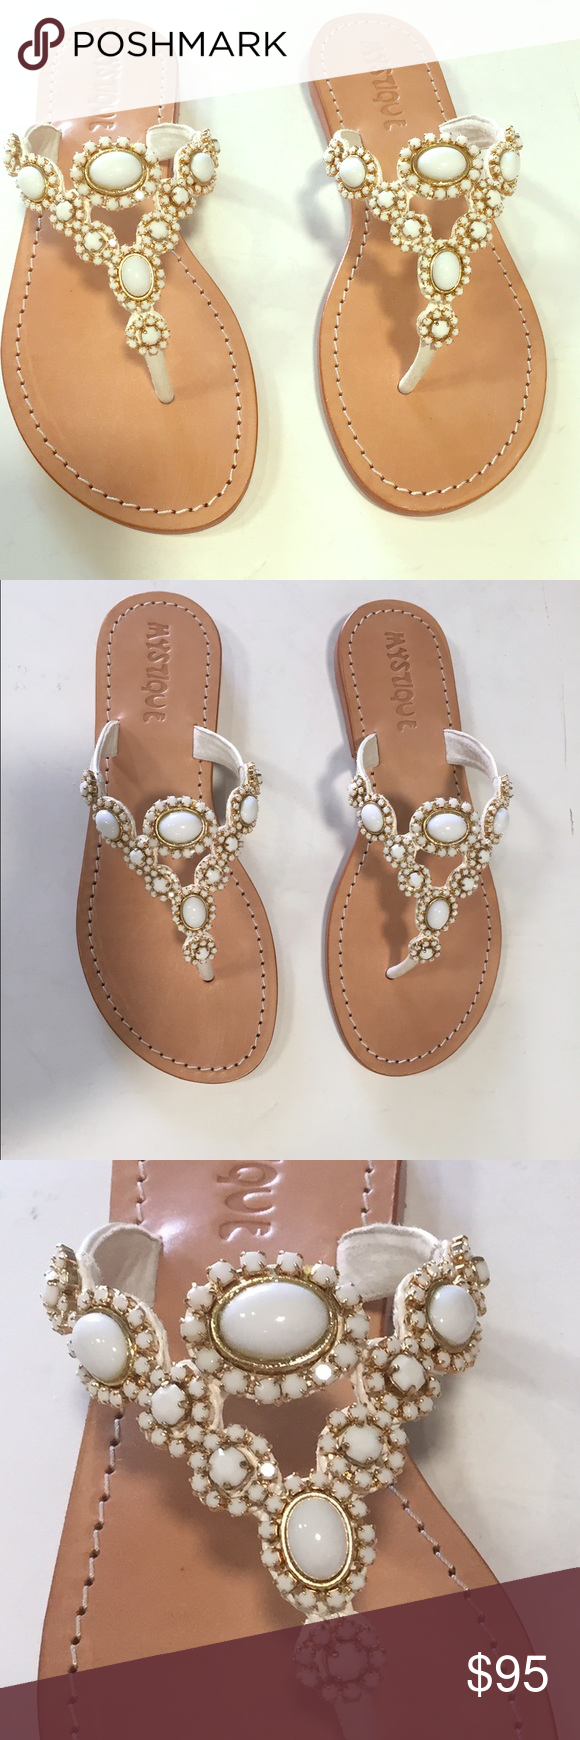 White embellished thong sandals! These sandals are the perfect sandals for any bride, especially those wanting a beach wedding! The jewels are absolutely gorgeous. Of course, anybody can wear these shoes. They are simple and classic. Brand new Mystique Shoes Sandals